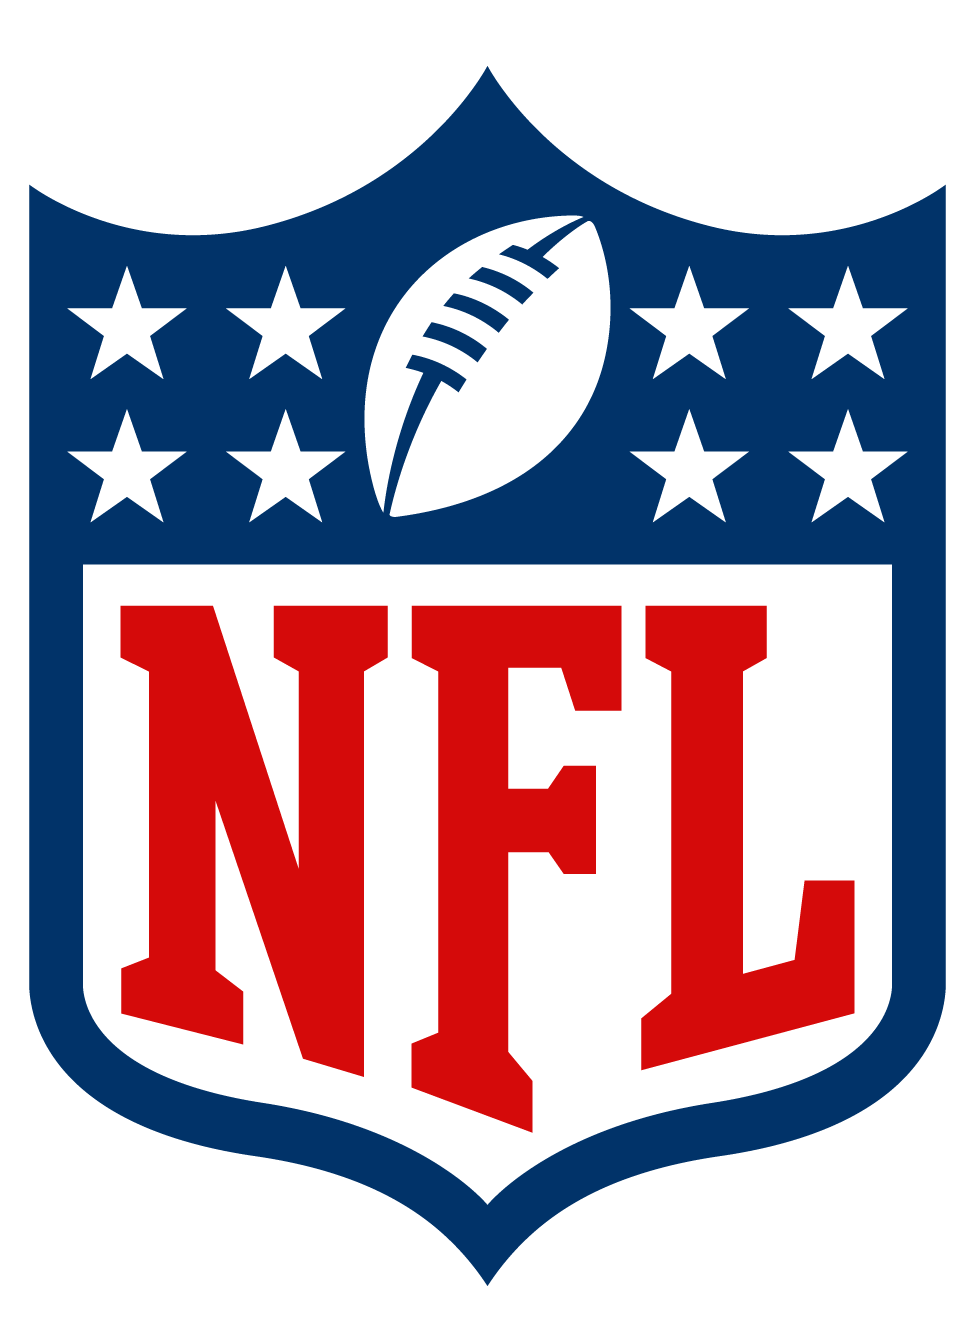 Football roster list clipart clipart royalty free download Yahoo pays NFL to stream regular-season game across globe for free ... clipart royalty free download